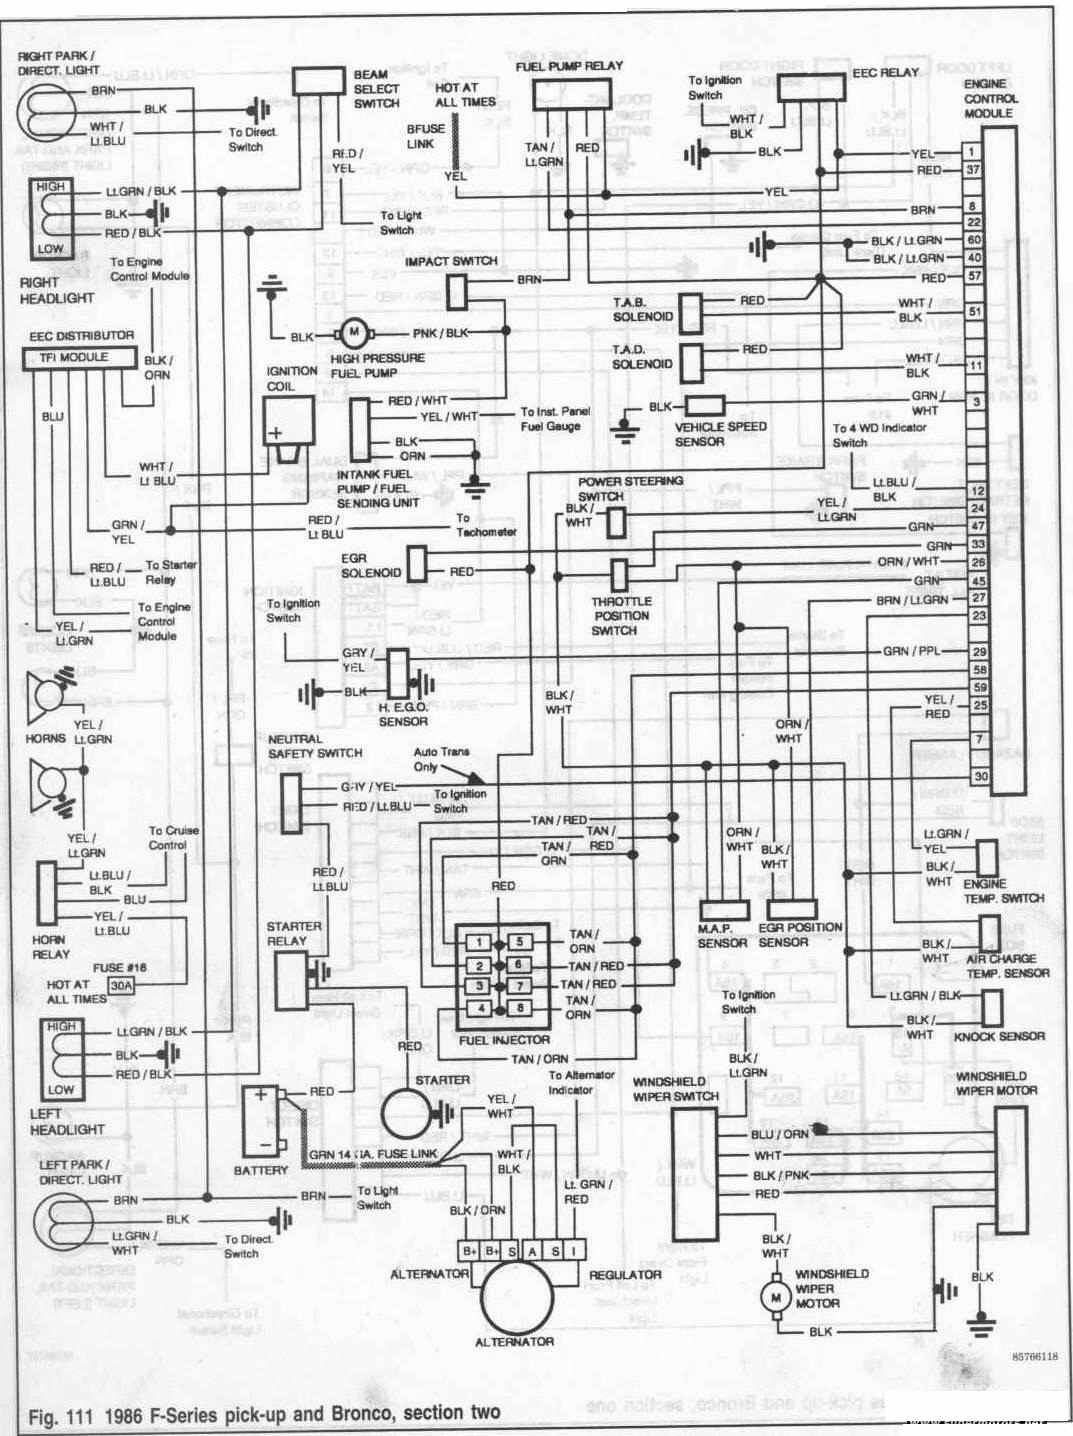 Awesome Engine Control Toyota 89661 Wiring Diagram Sketch ...